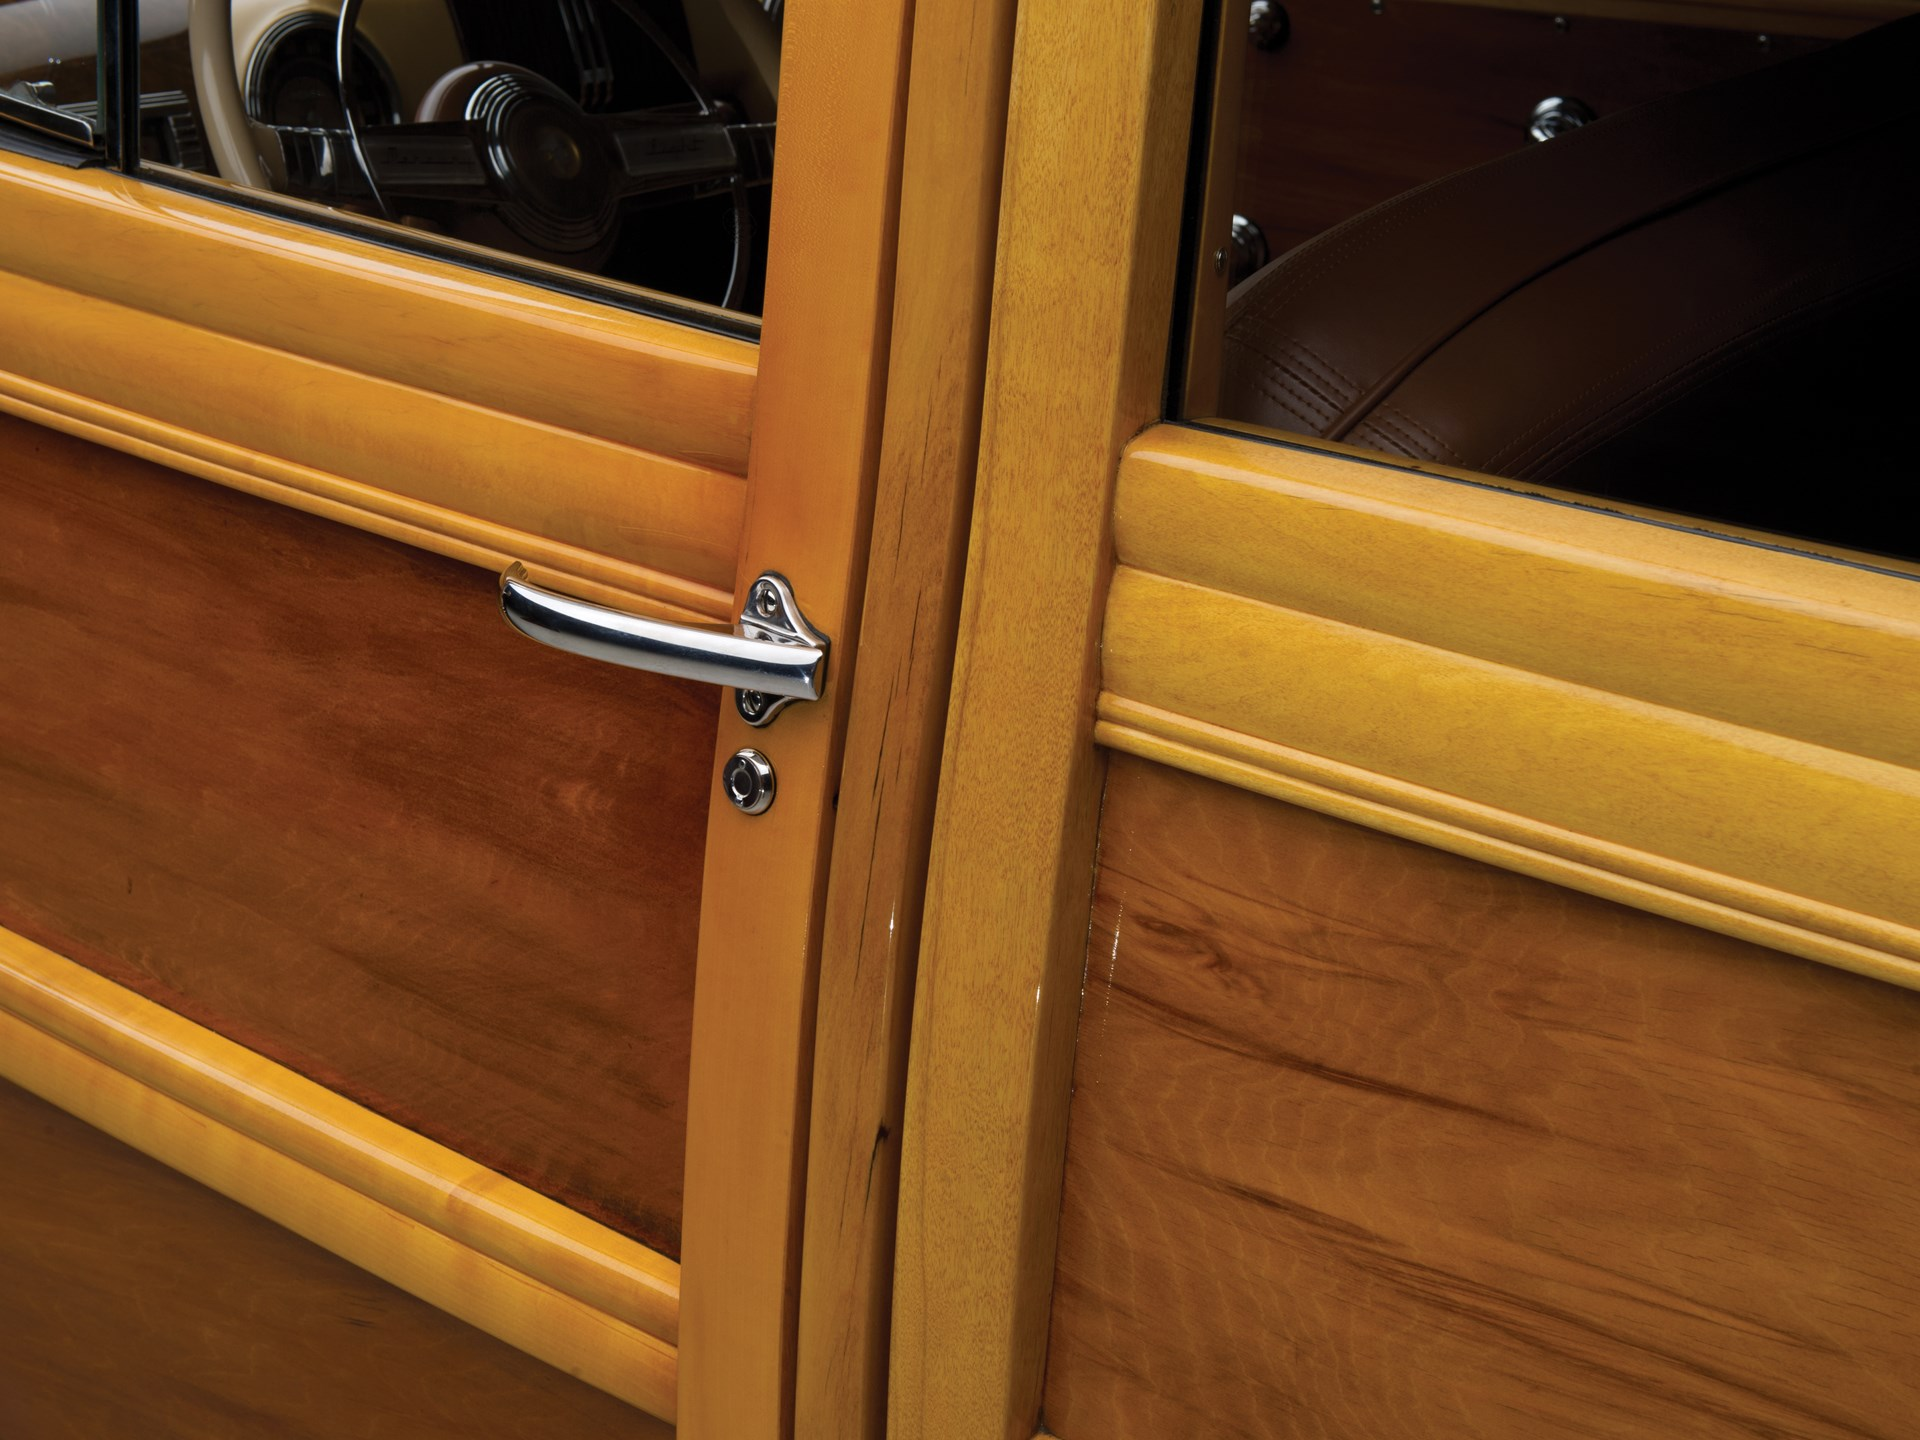 Rm Sothebys 1942 Mercury Station Wagon The Dingman Collection 2012 1941 Woody